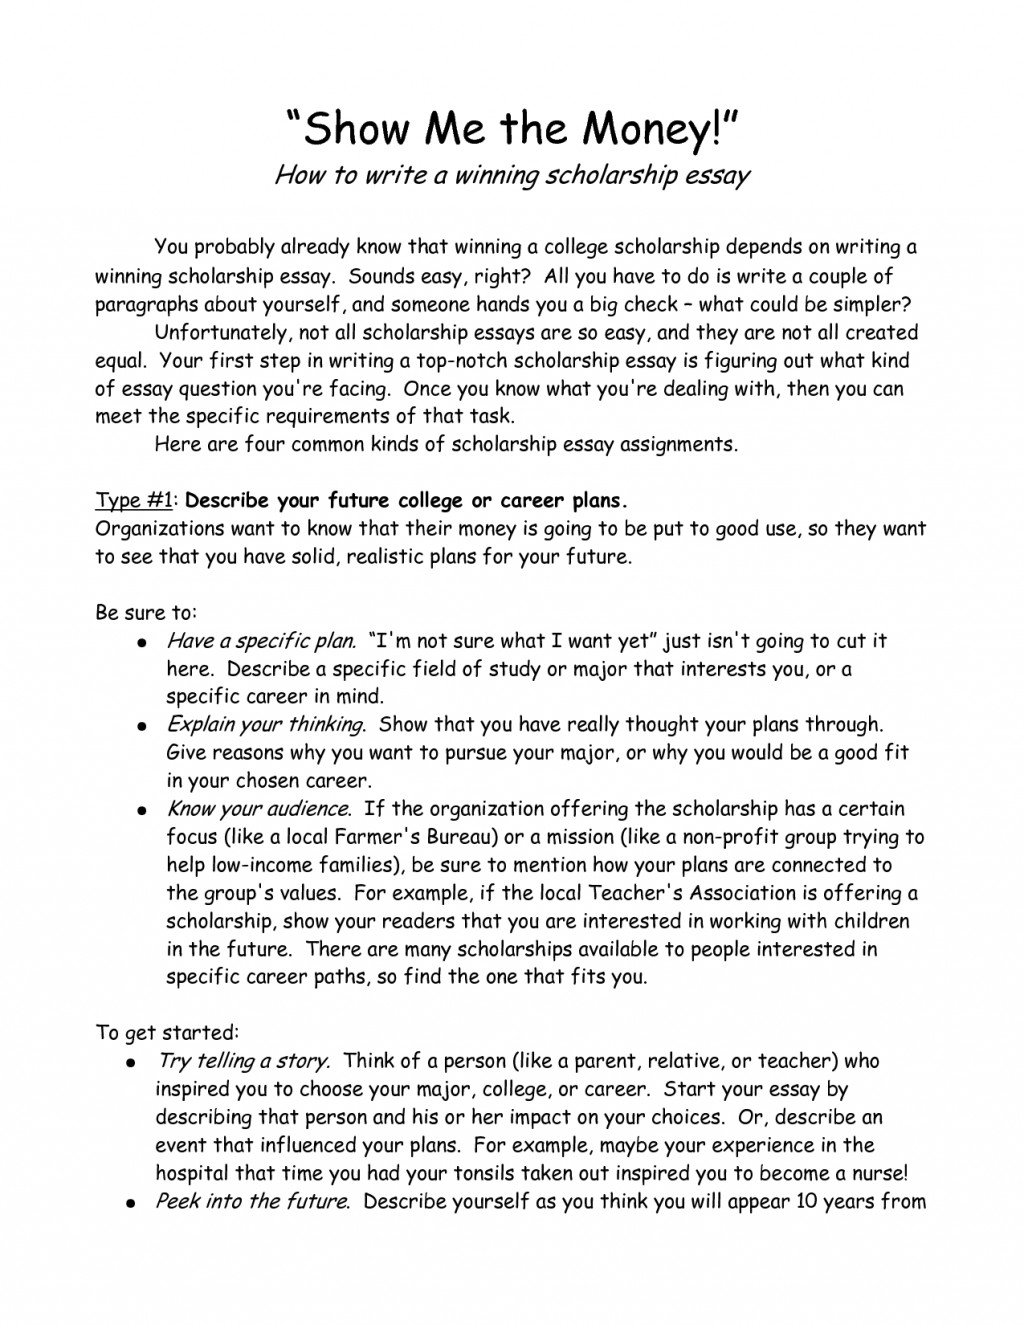 001 Sample Essay For Scholarship Ideas Of Write Enom Warb Also Writing Cover Letter Incredible Mara Personal Pdf Large